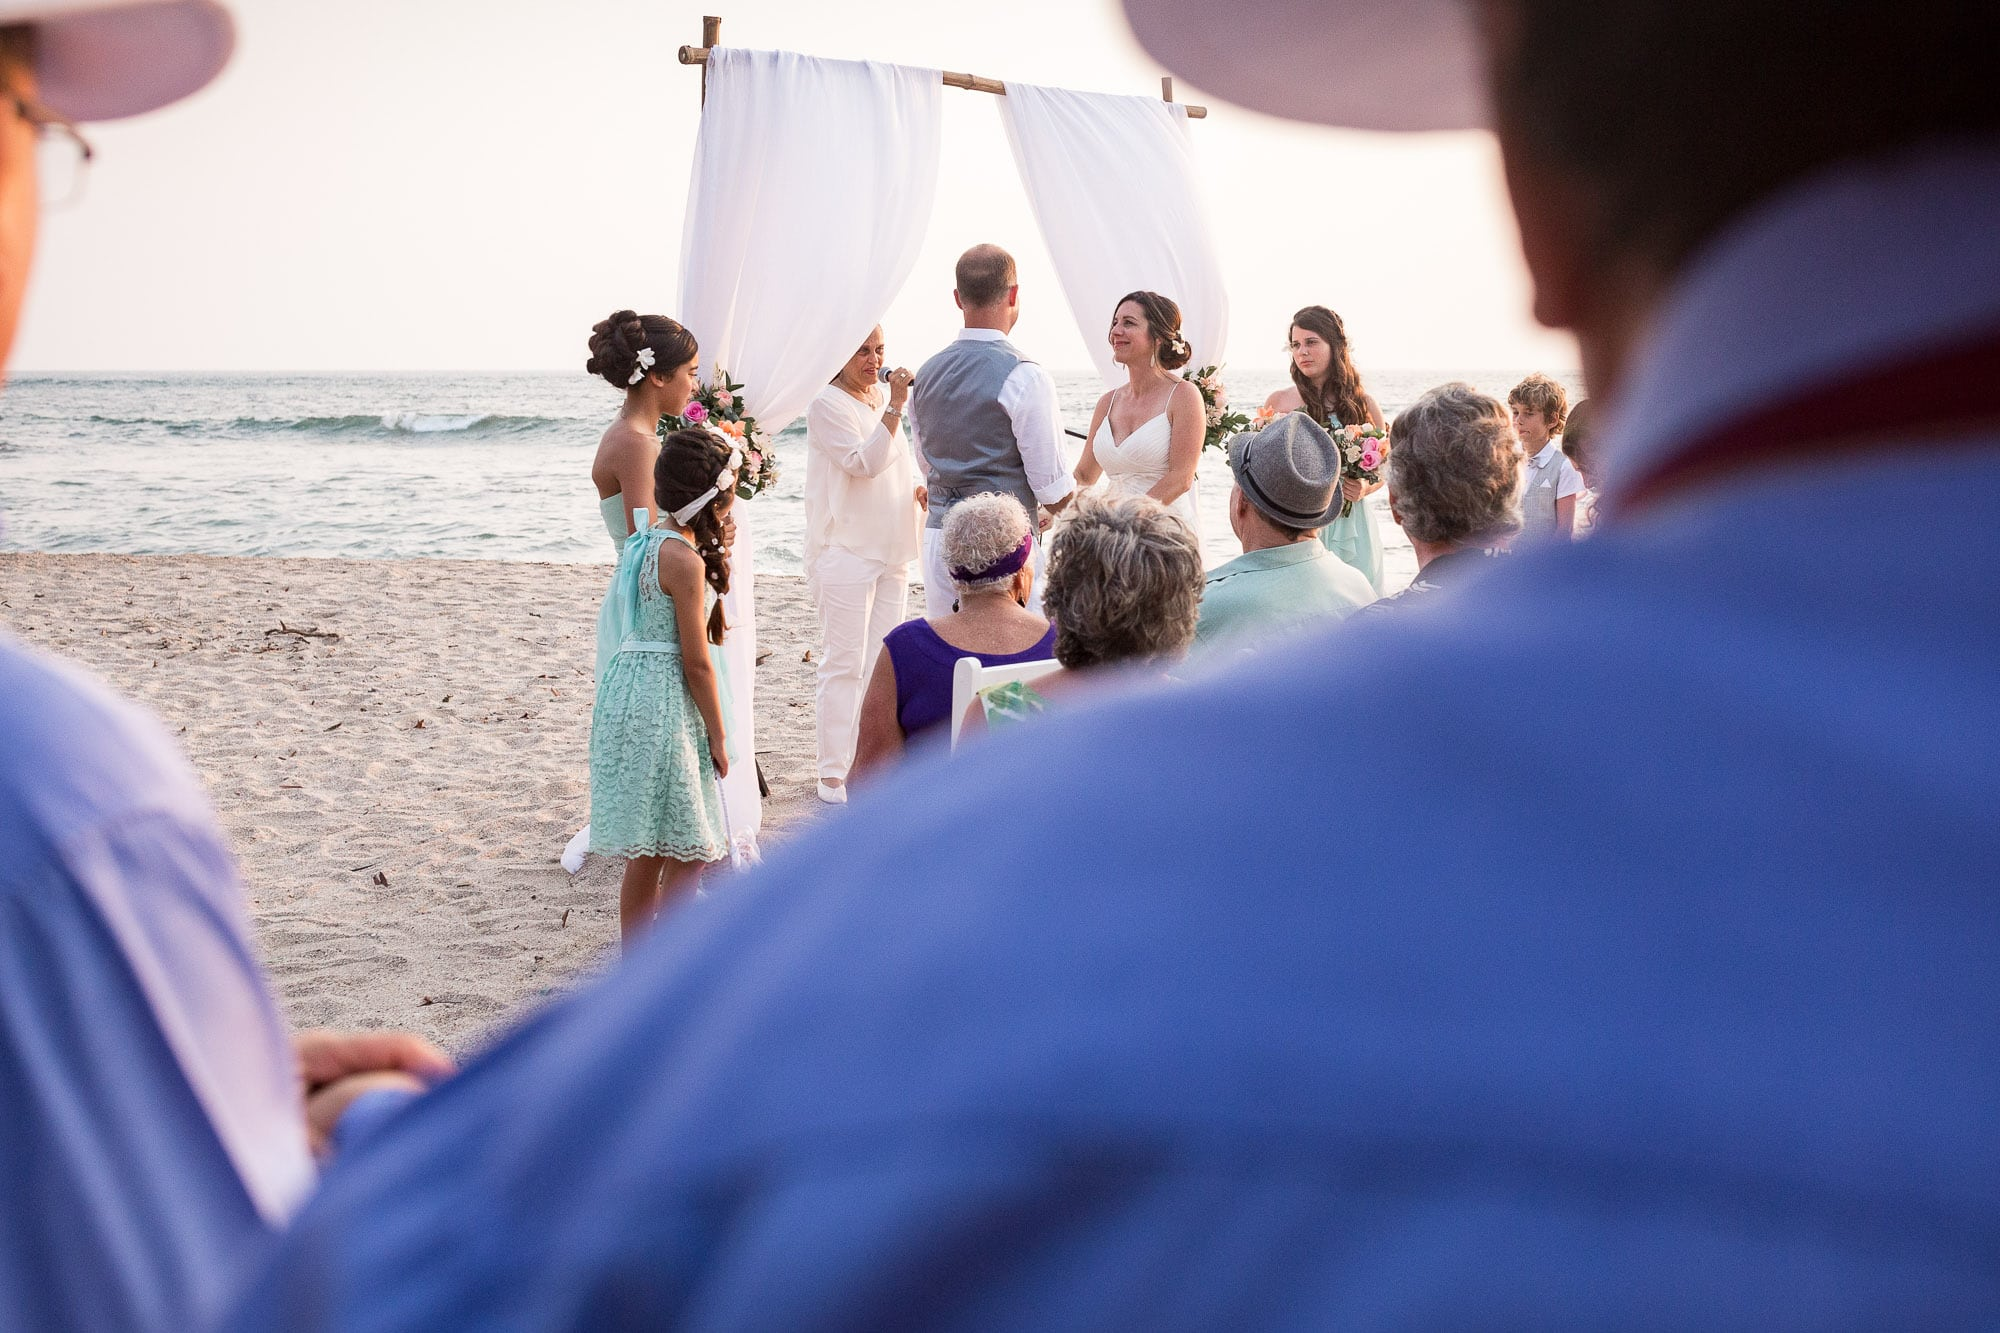 Over the shoulder peek at the ceremony